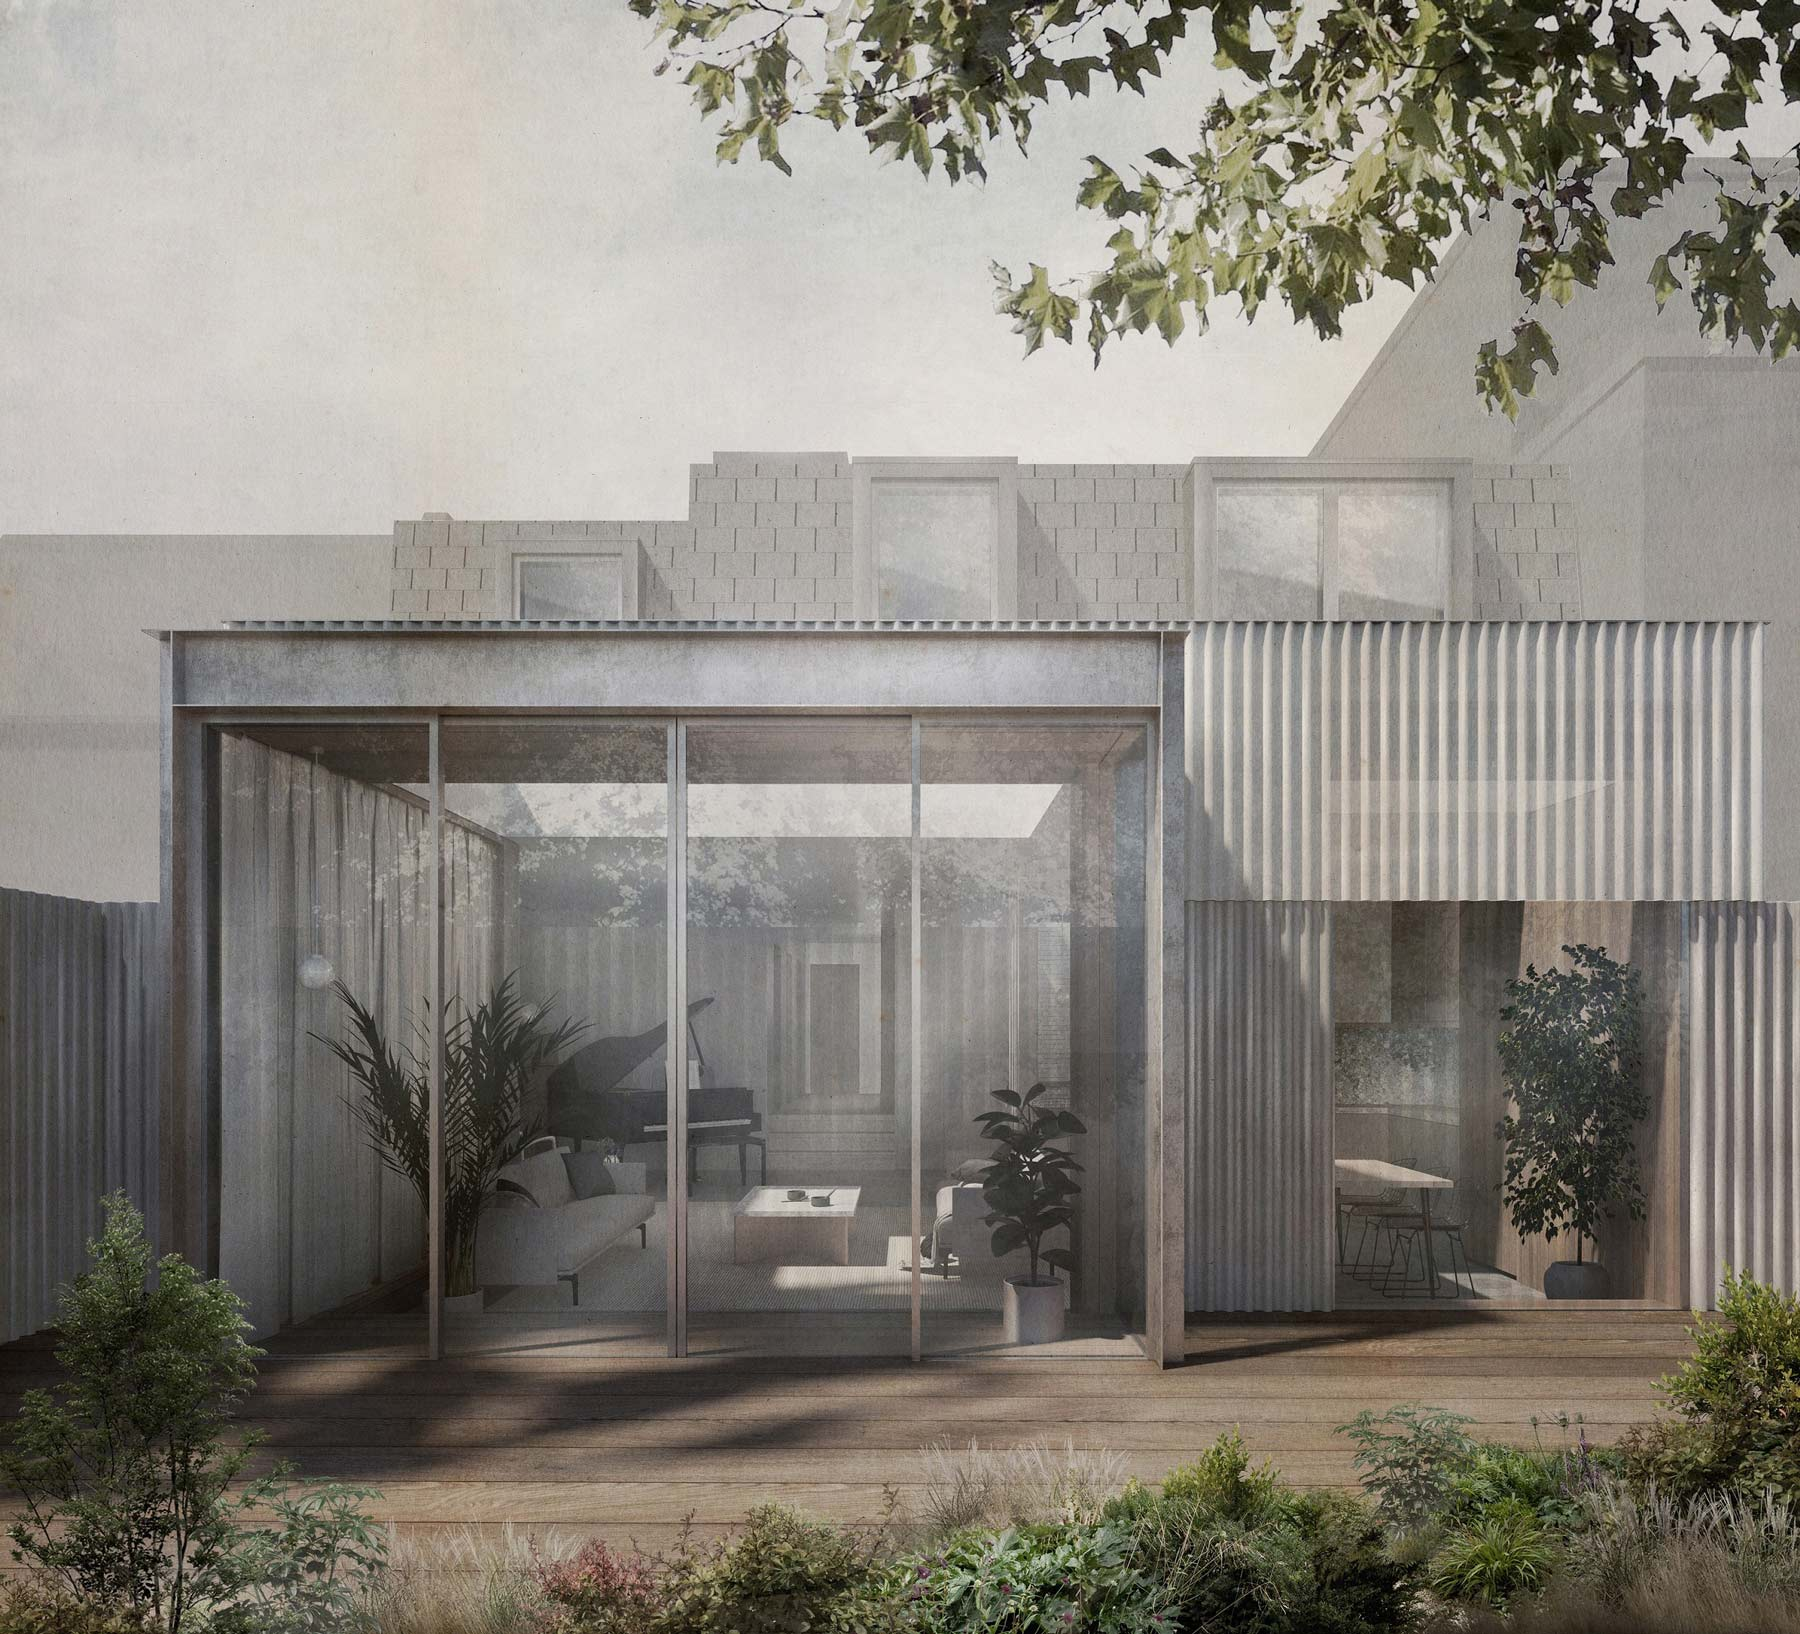 Architect extension corrugated metal